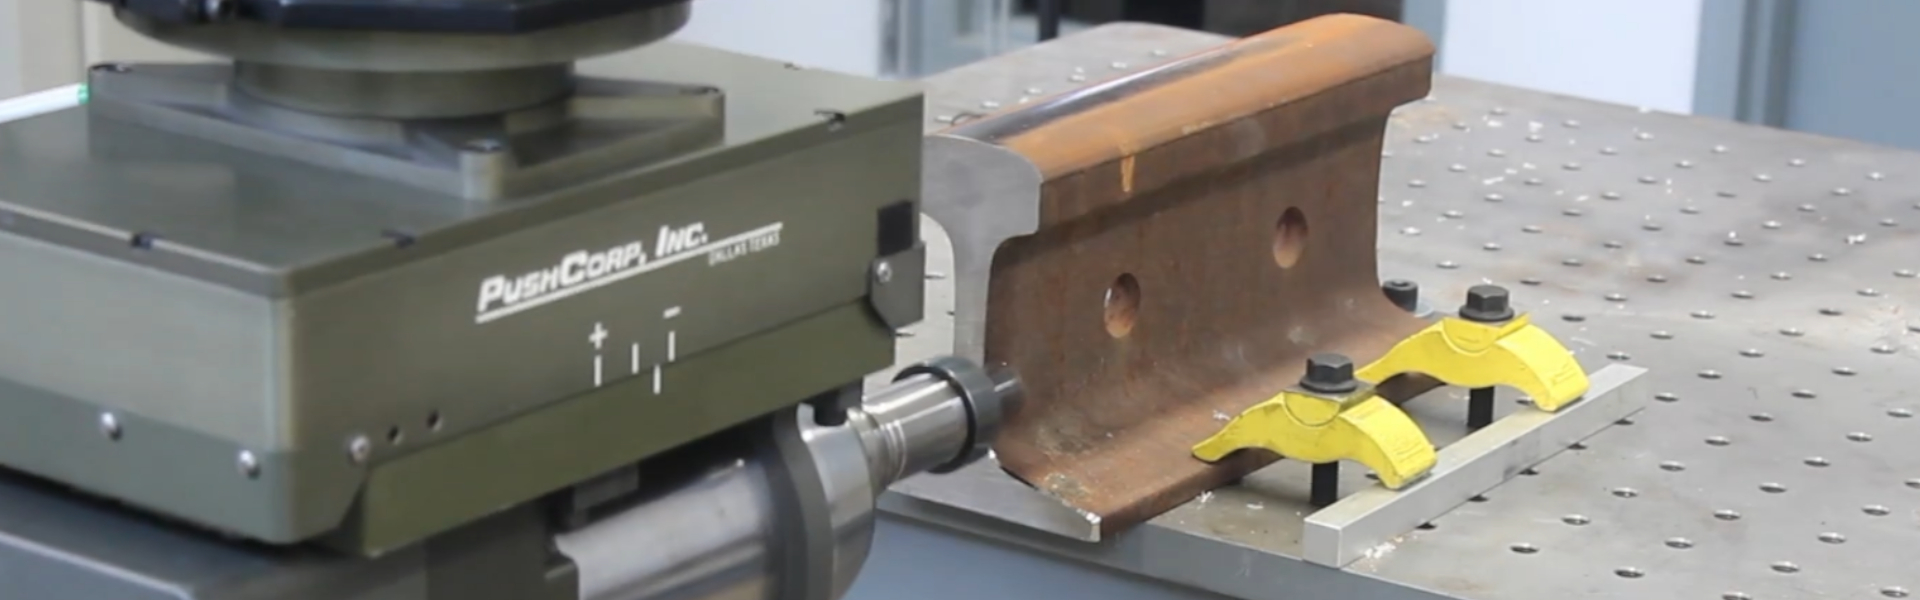 automated robotic deburring attachments